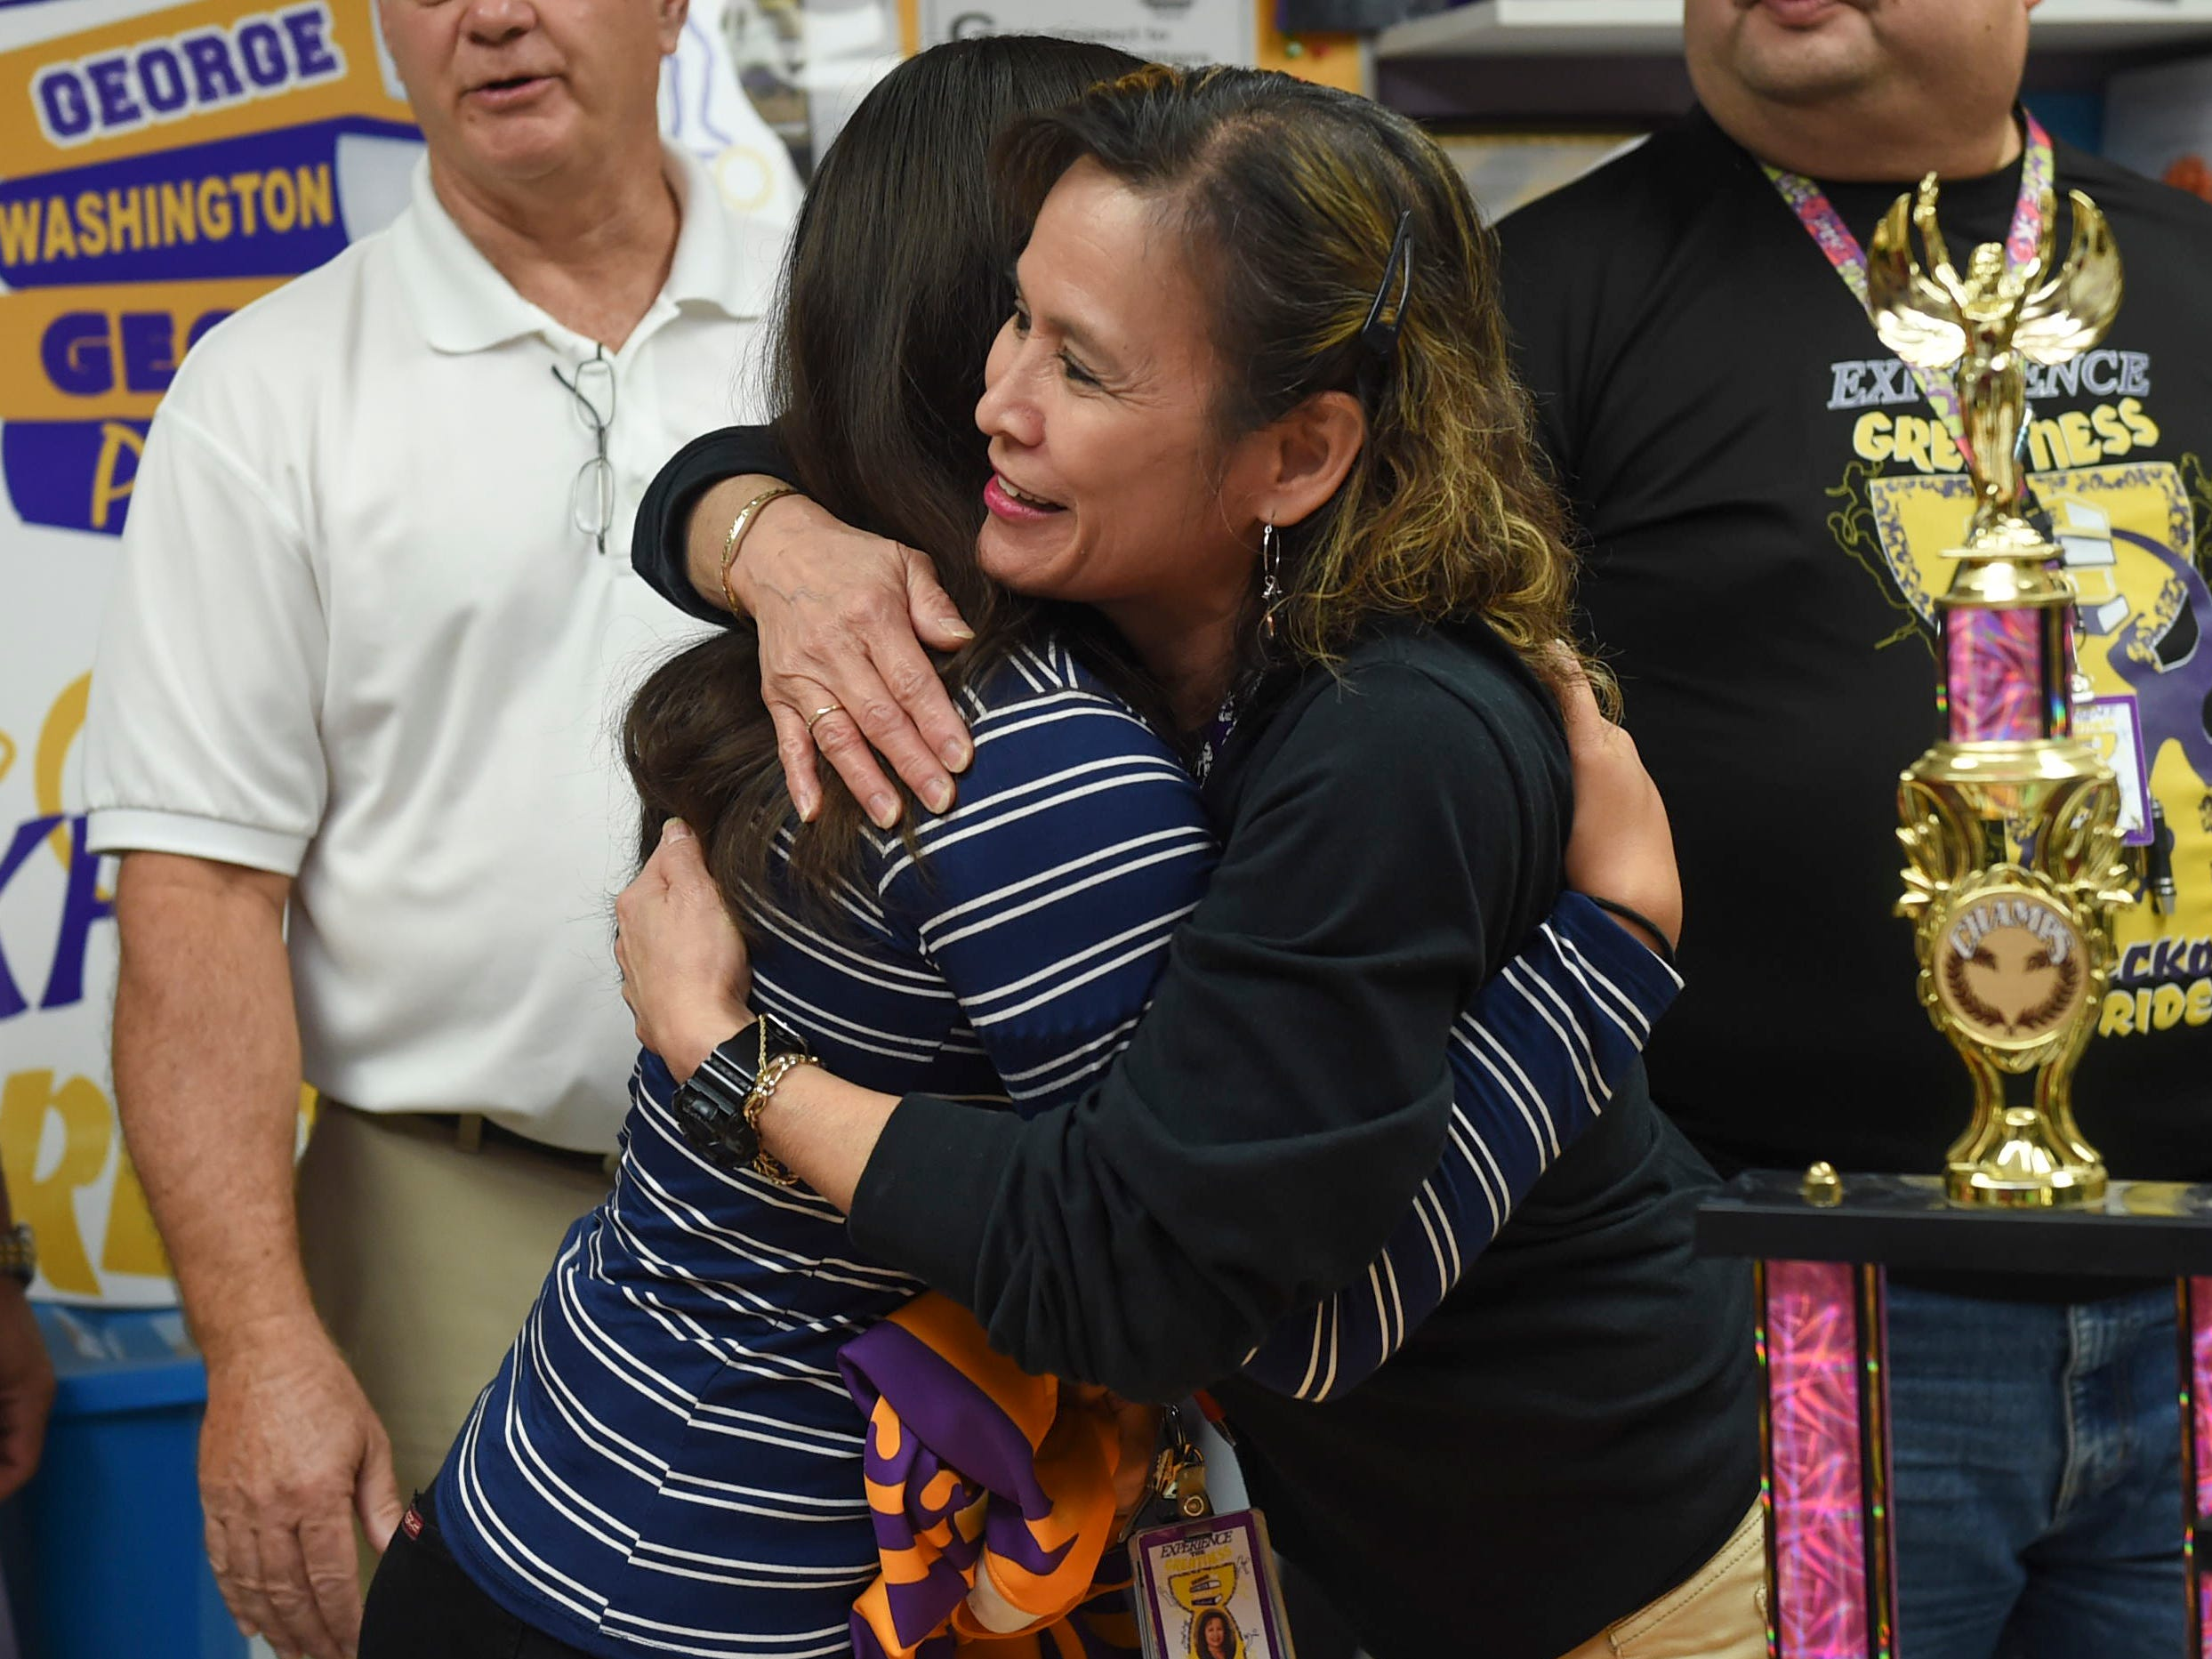 George Washington High School Principal Yolinda Hernandez-Avilla hugs Jalana Garcia, 18, following her signing with Mount St. Mary's University in Emmitsburg, Maryland, at the GWHS main office, Jan. 11, 2019.